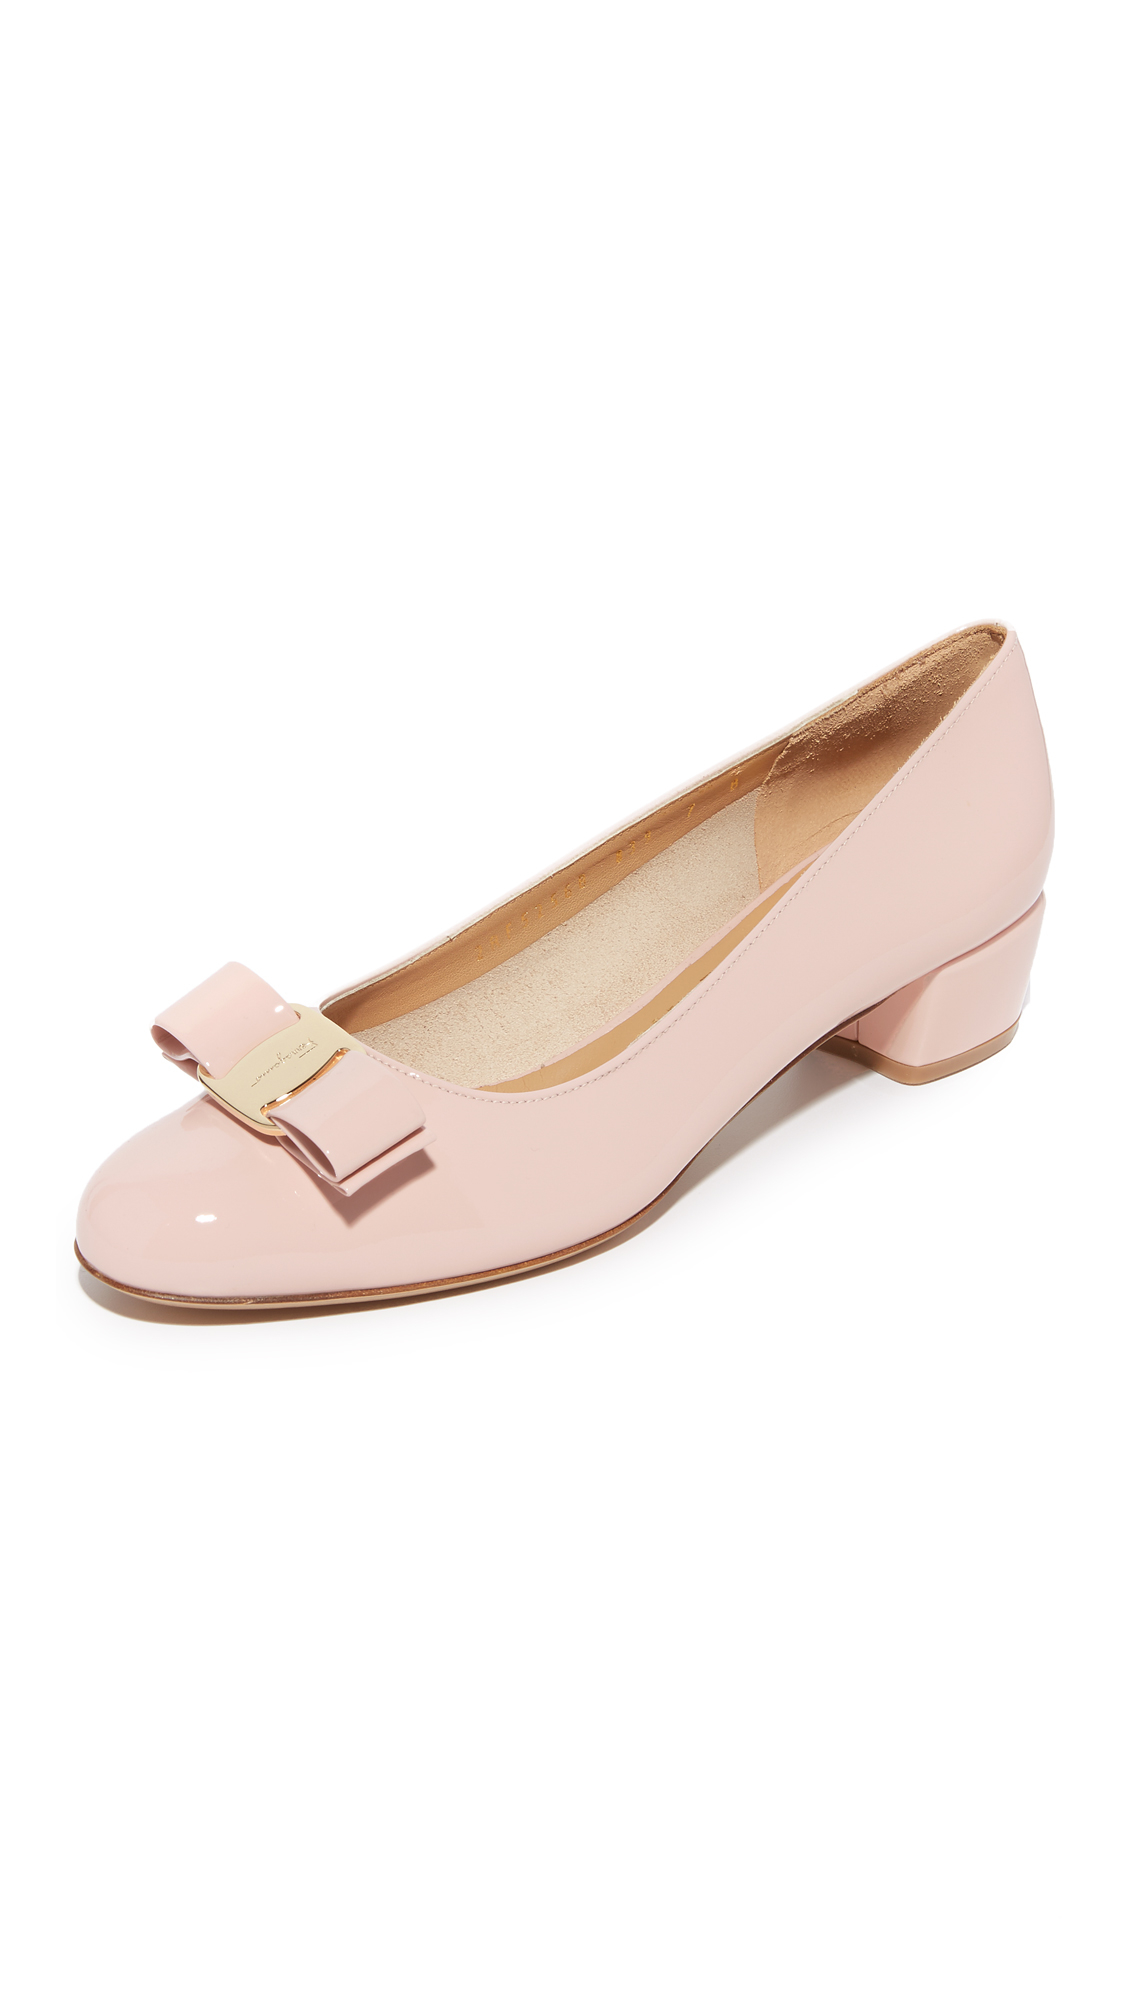 Fiore Shoes High Heel Ted Bow